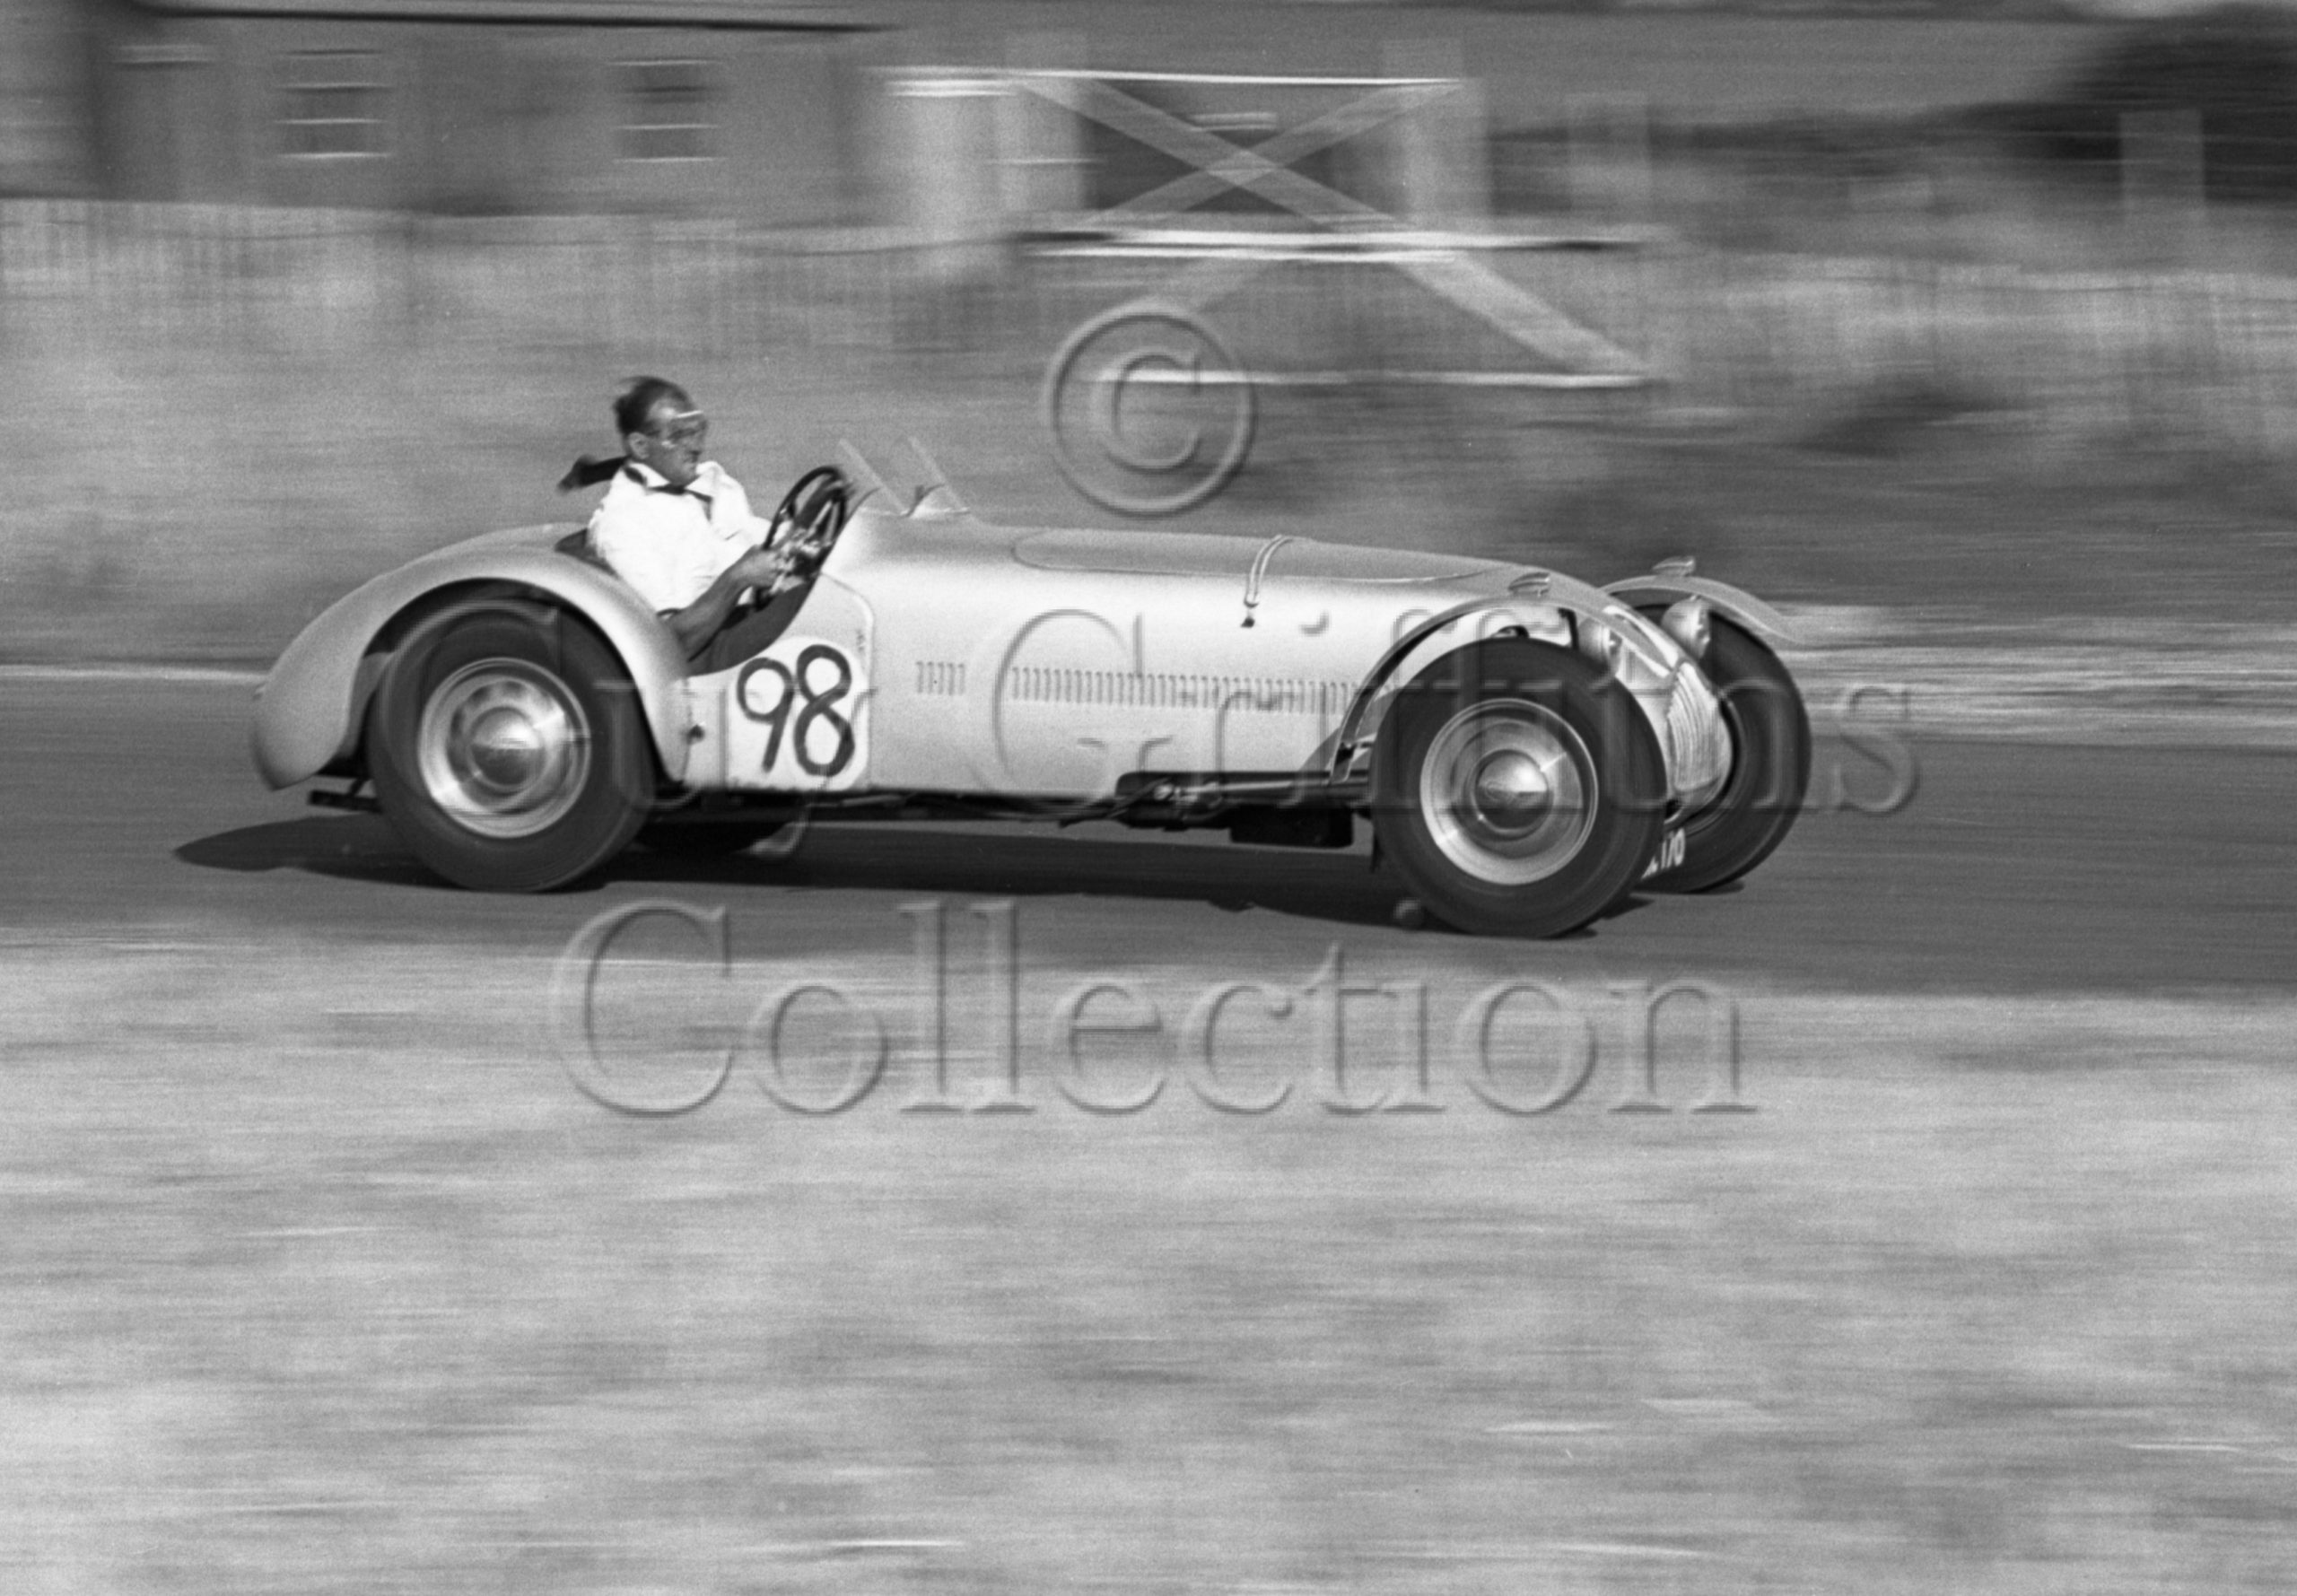 20-533–S-H-Allard–Allard–Goodwood–13-08-1949.jpg - Guy Griffiths Collection